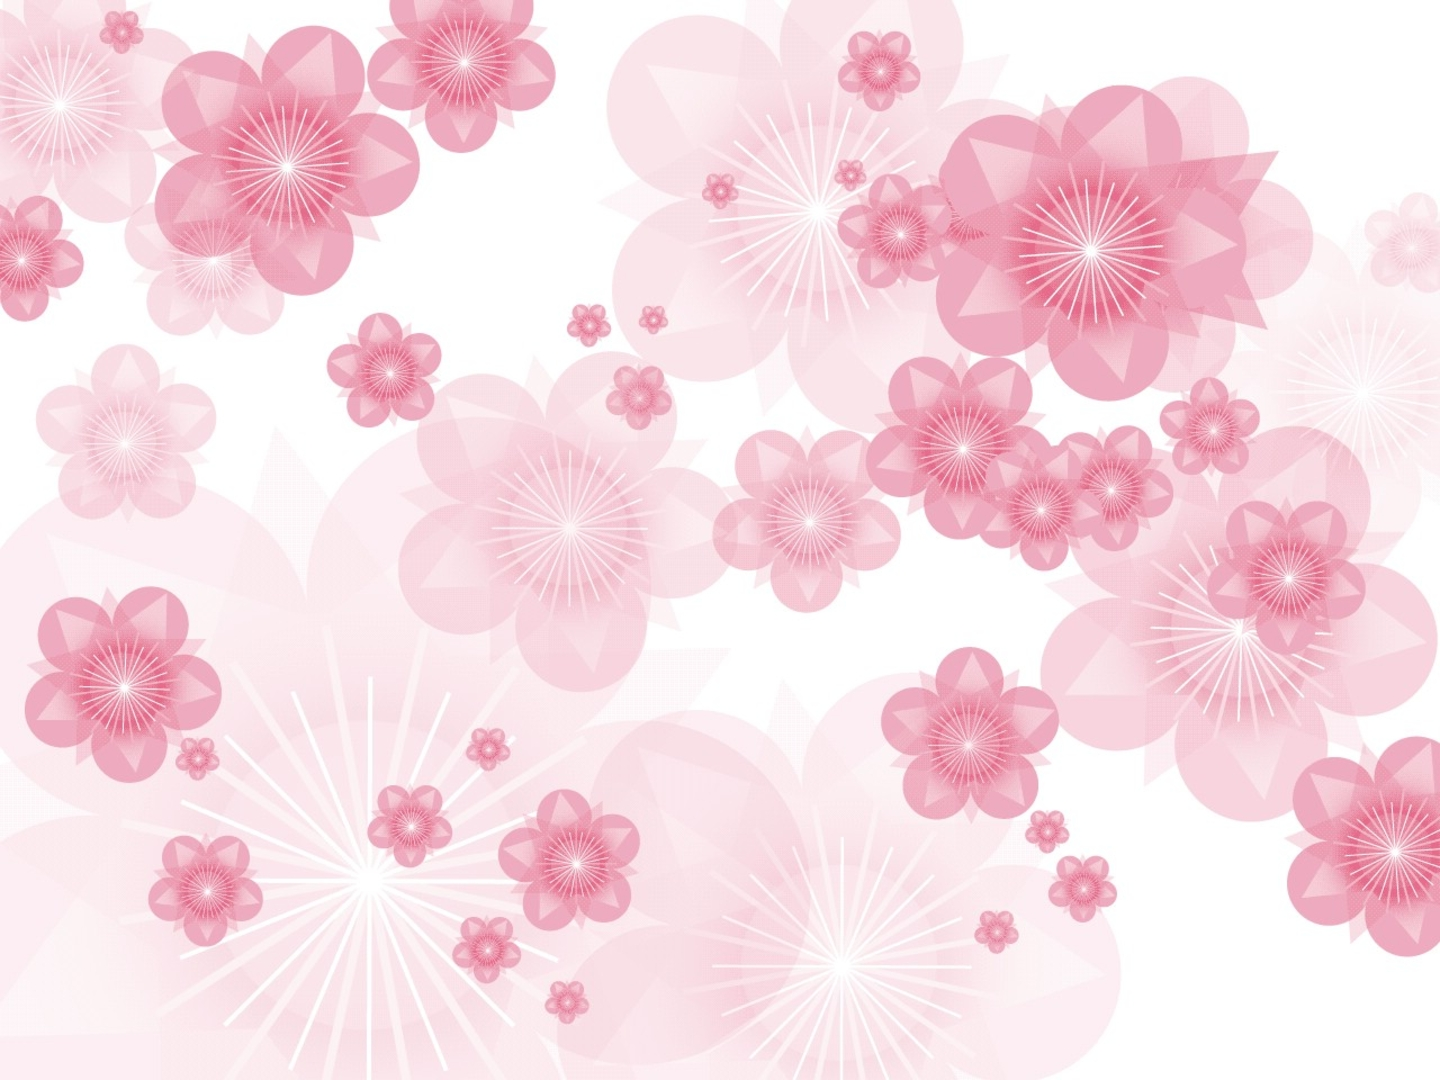 Pink flower wallpapers high quality download free mightylinksfo